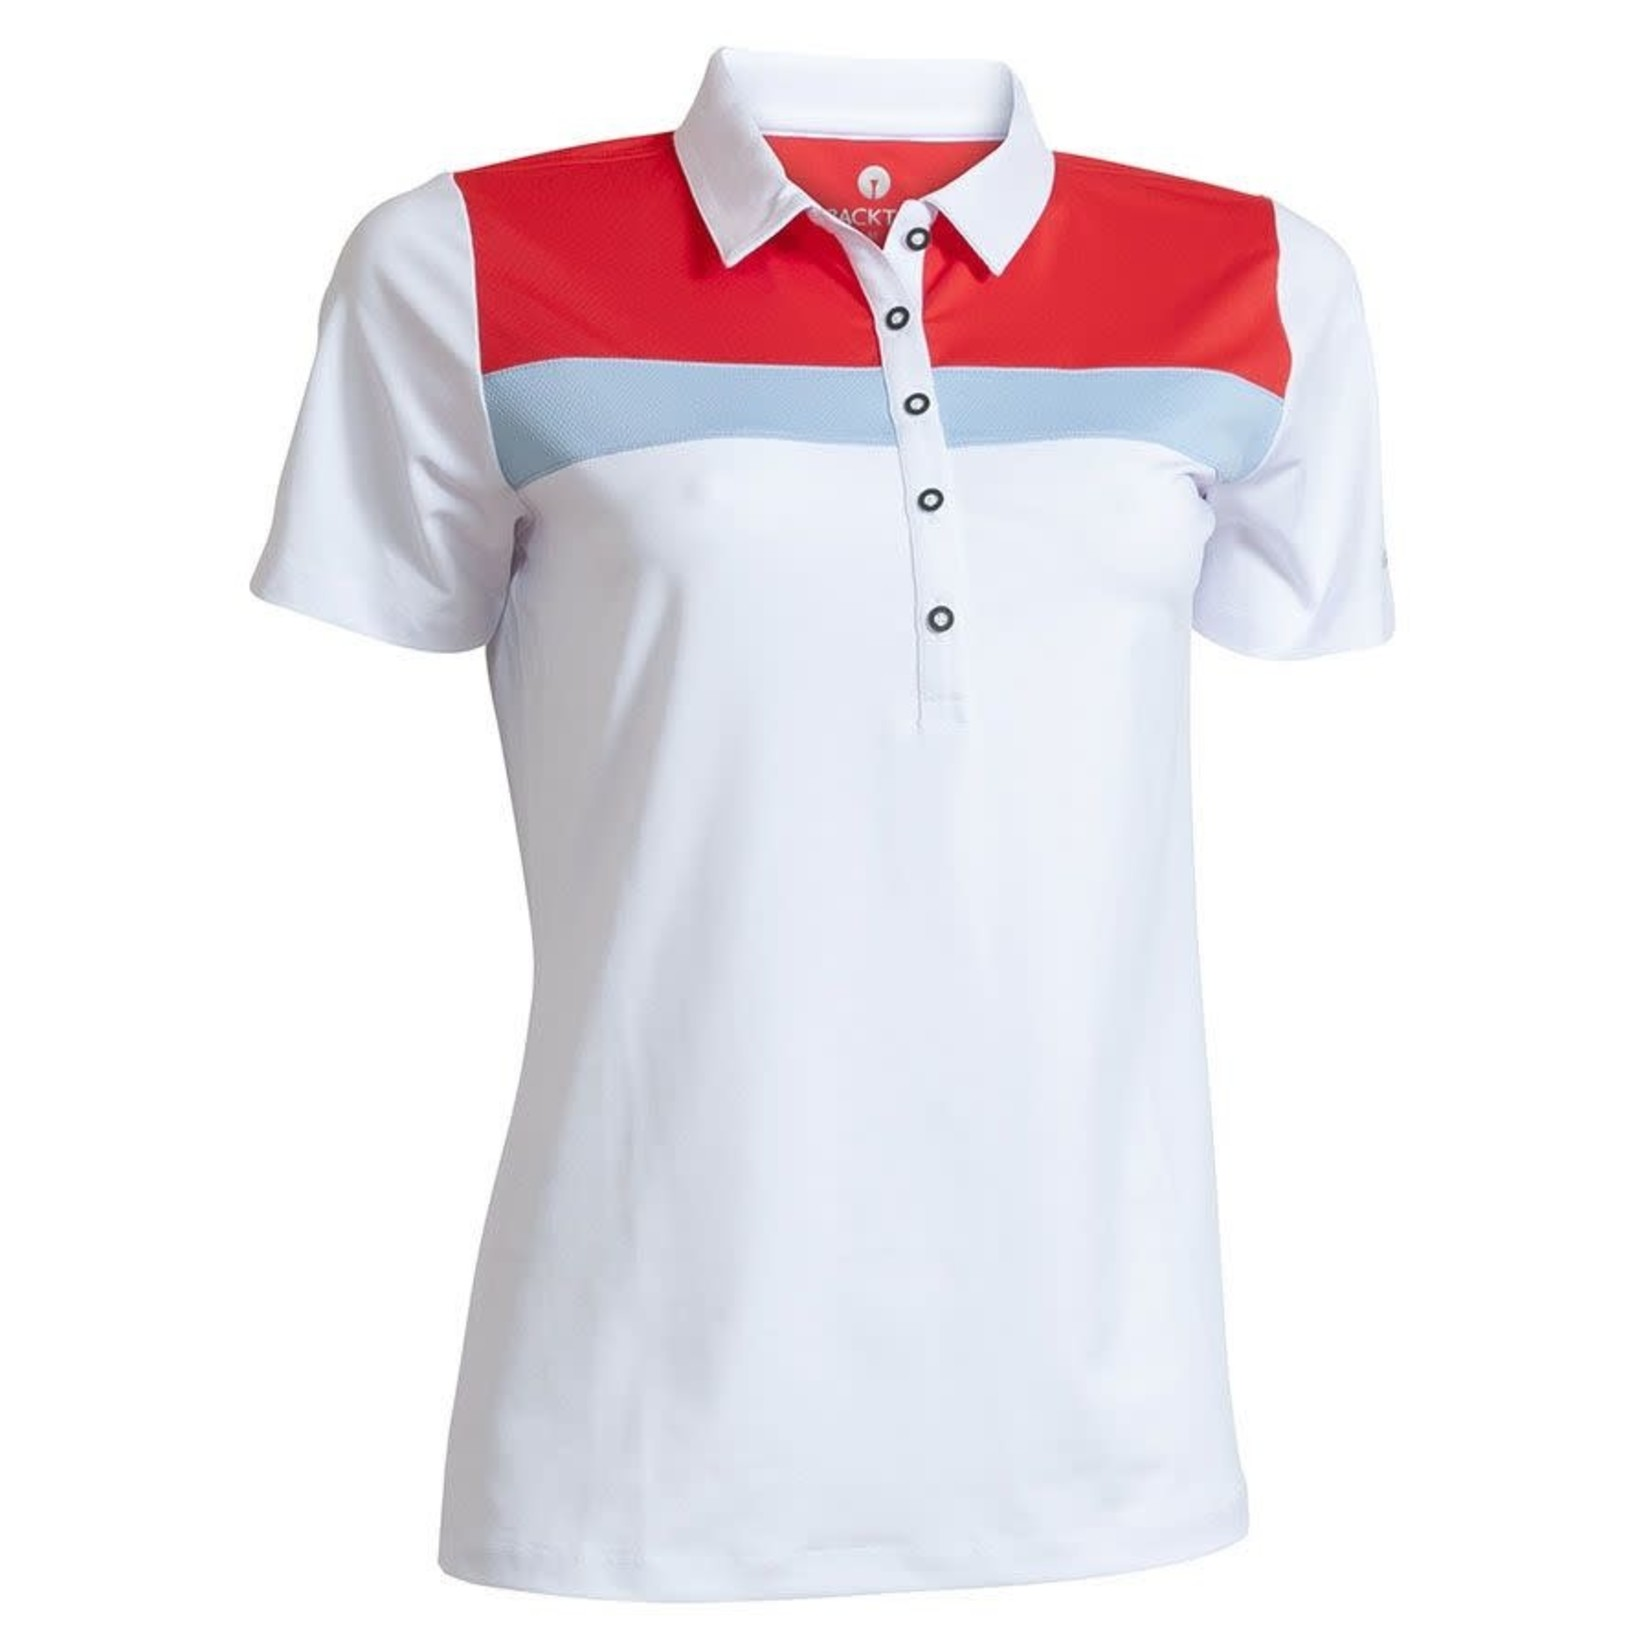 Backtee Backtee Ladies Sports Qd Uv Polo wit/rood/lblauw M